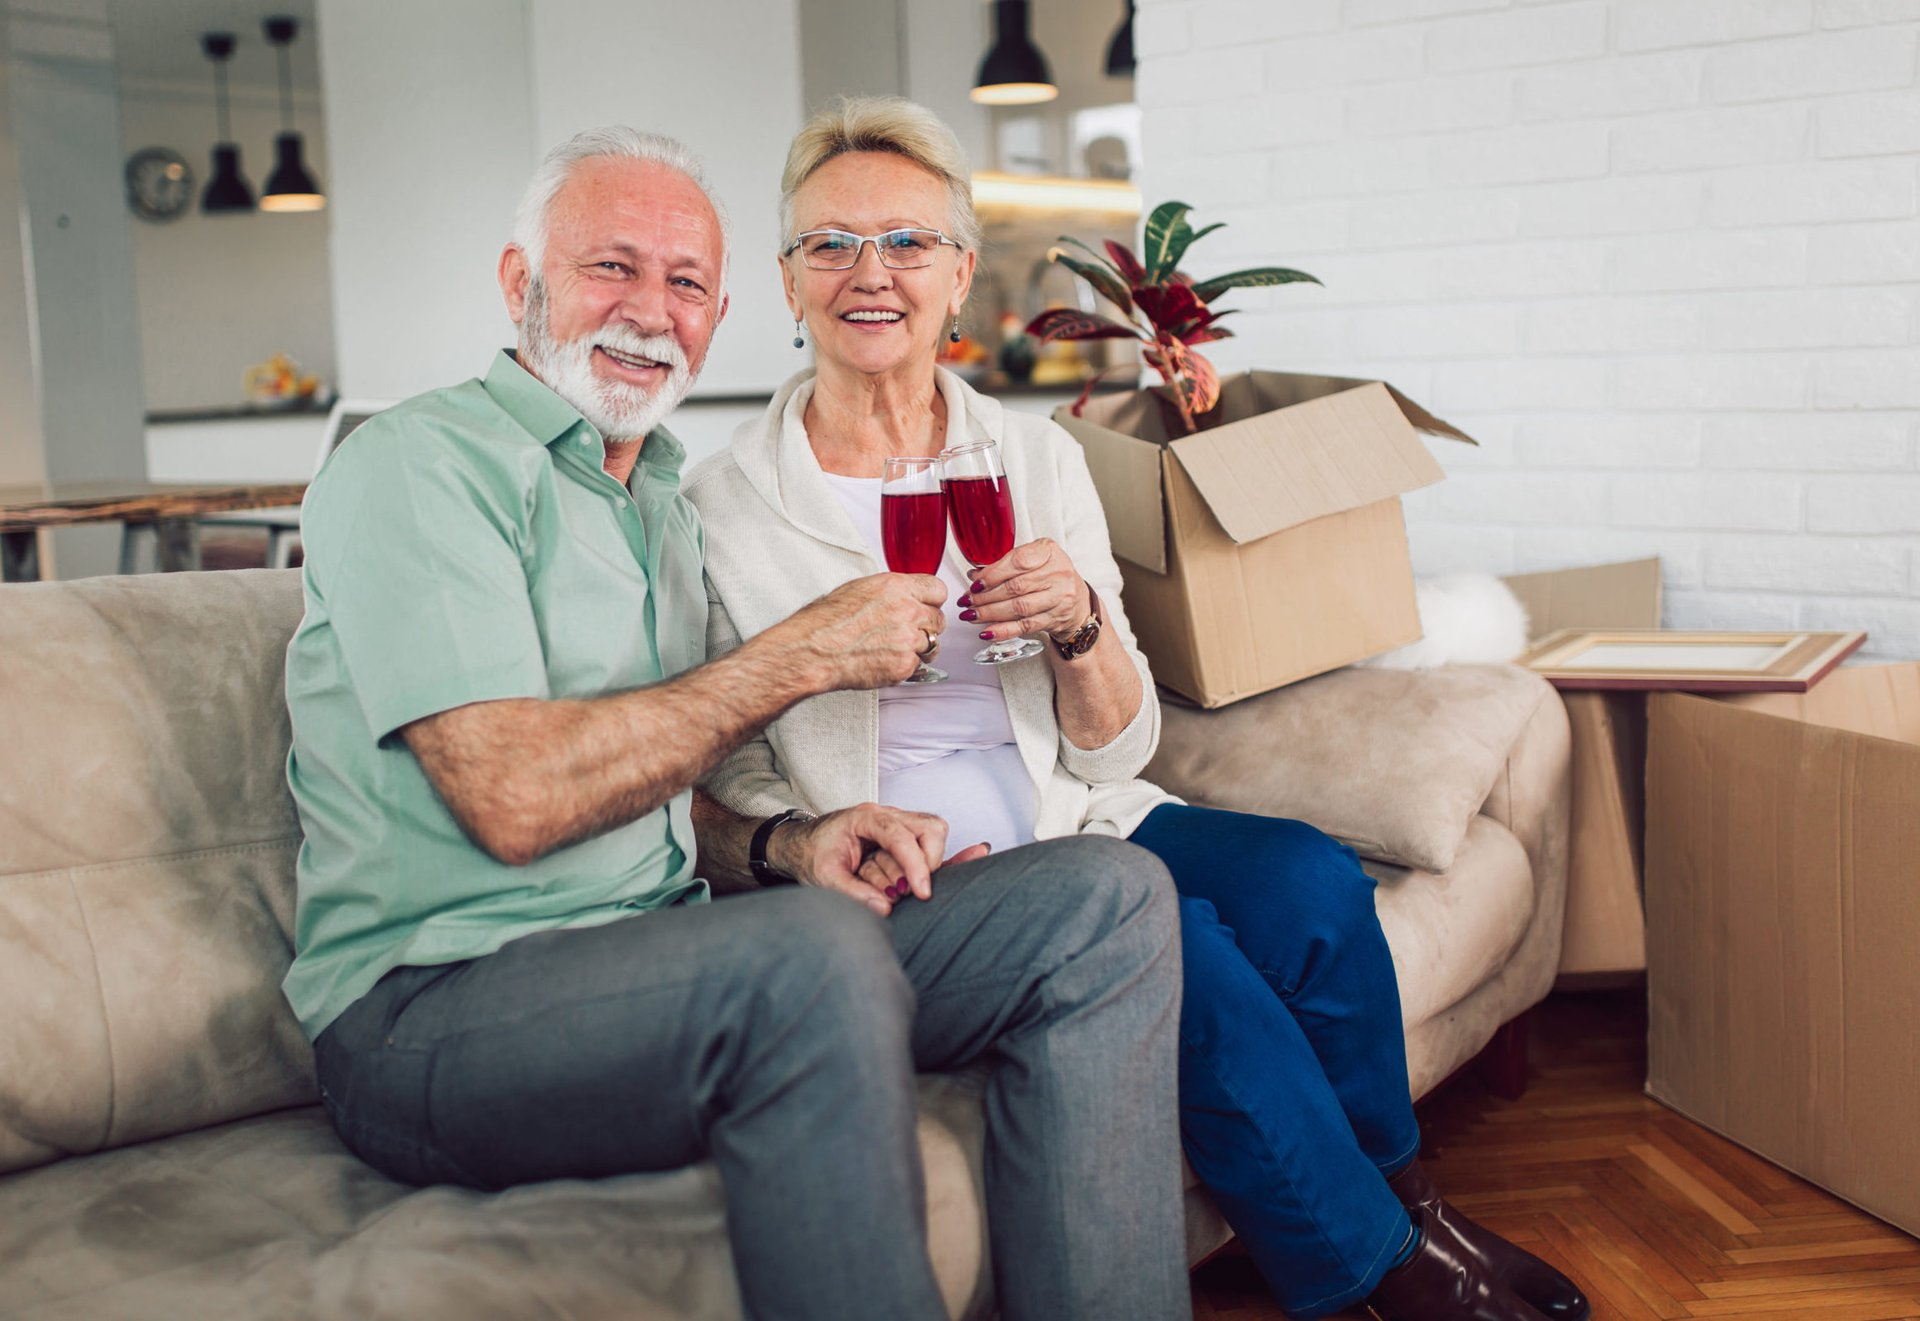 Retired couple downsizing to a smaller home